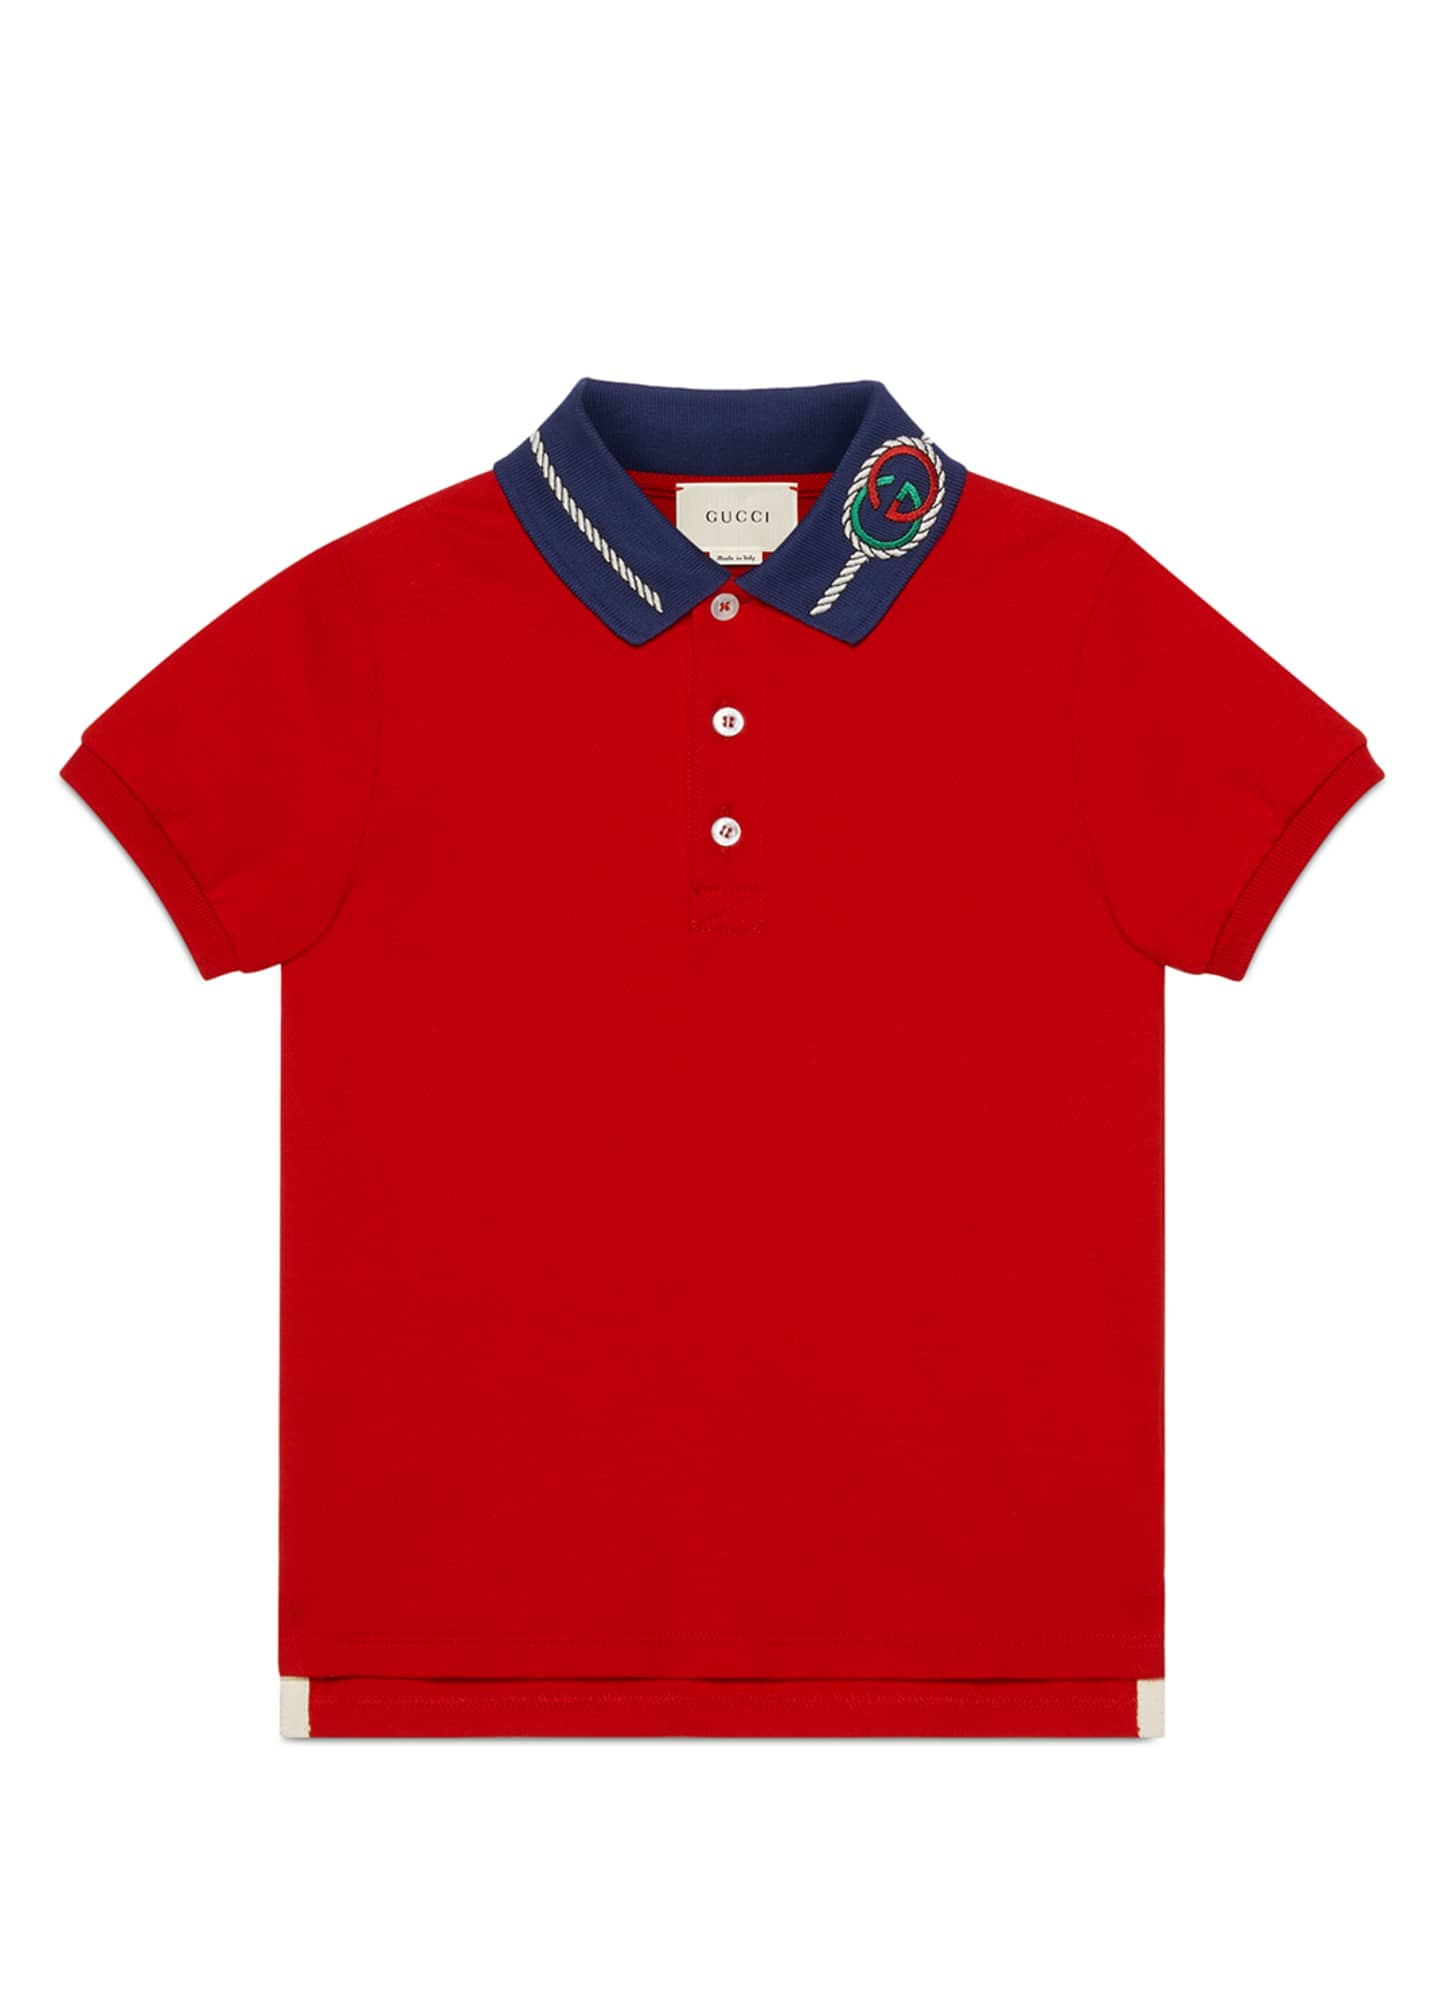 Gucci Boy's Contrast Collar Polo Shirt with GG